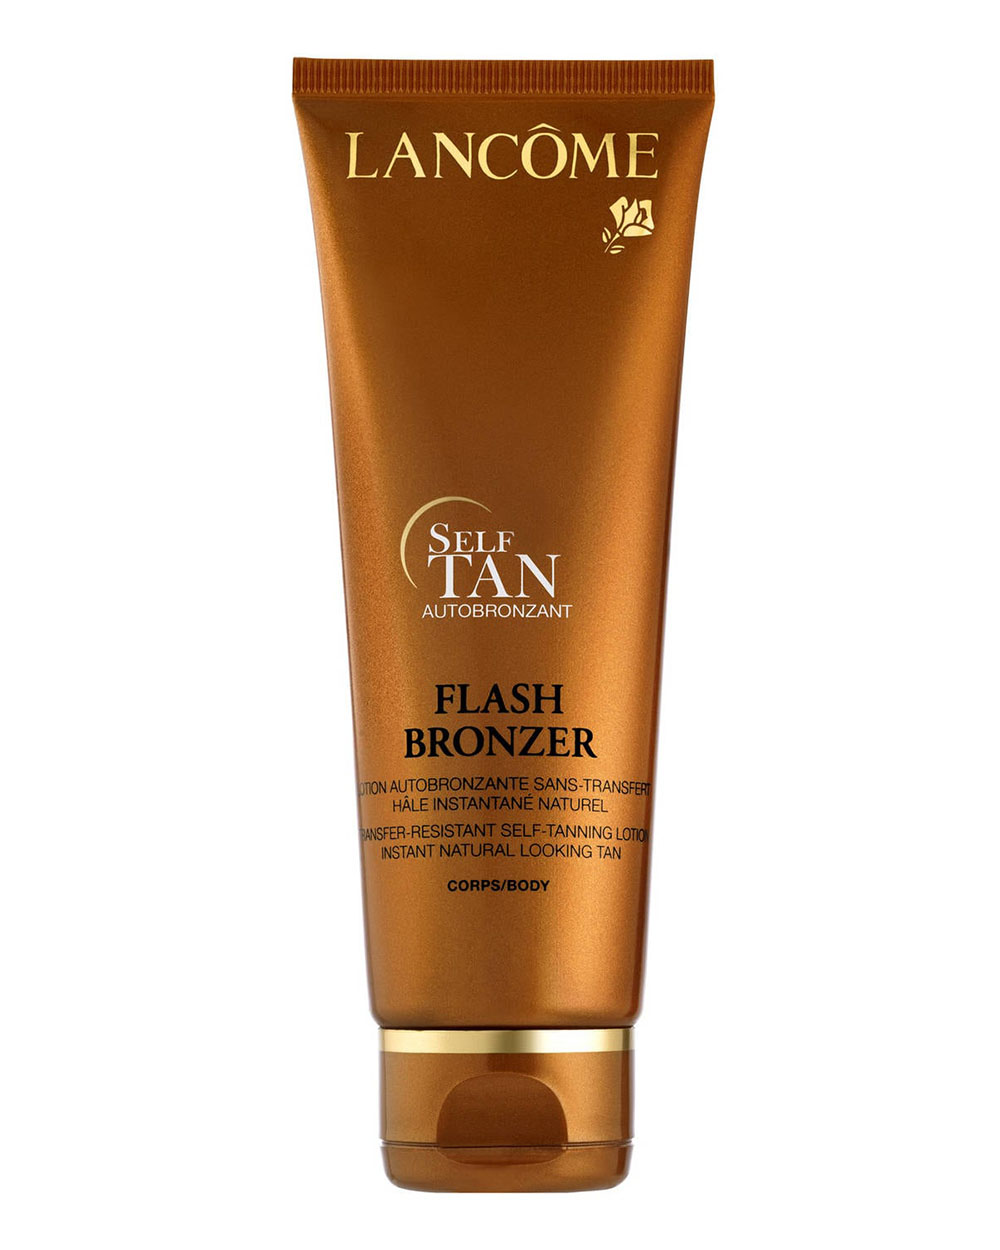 LANCÔME - Flash Bronzer